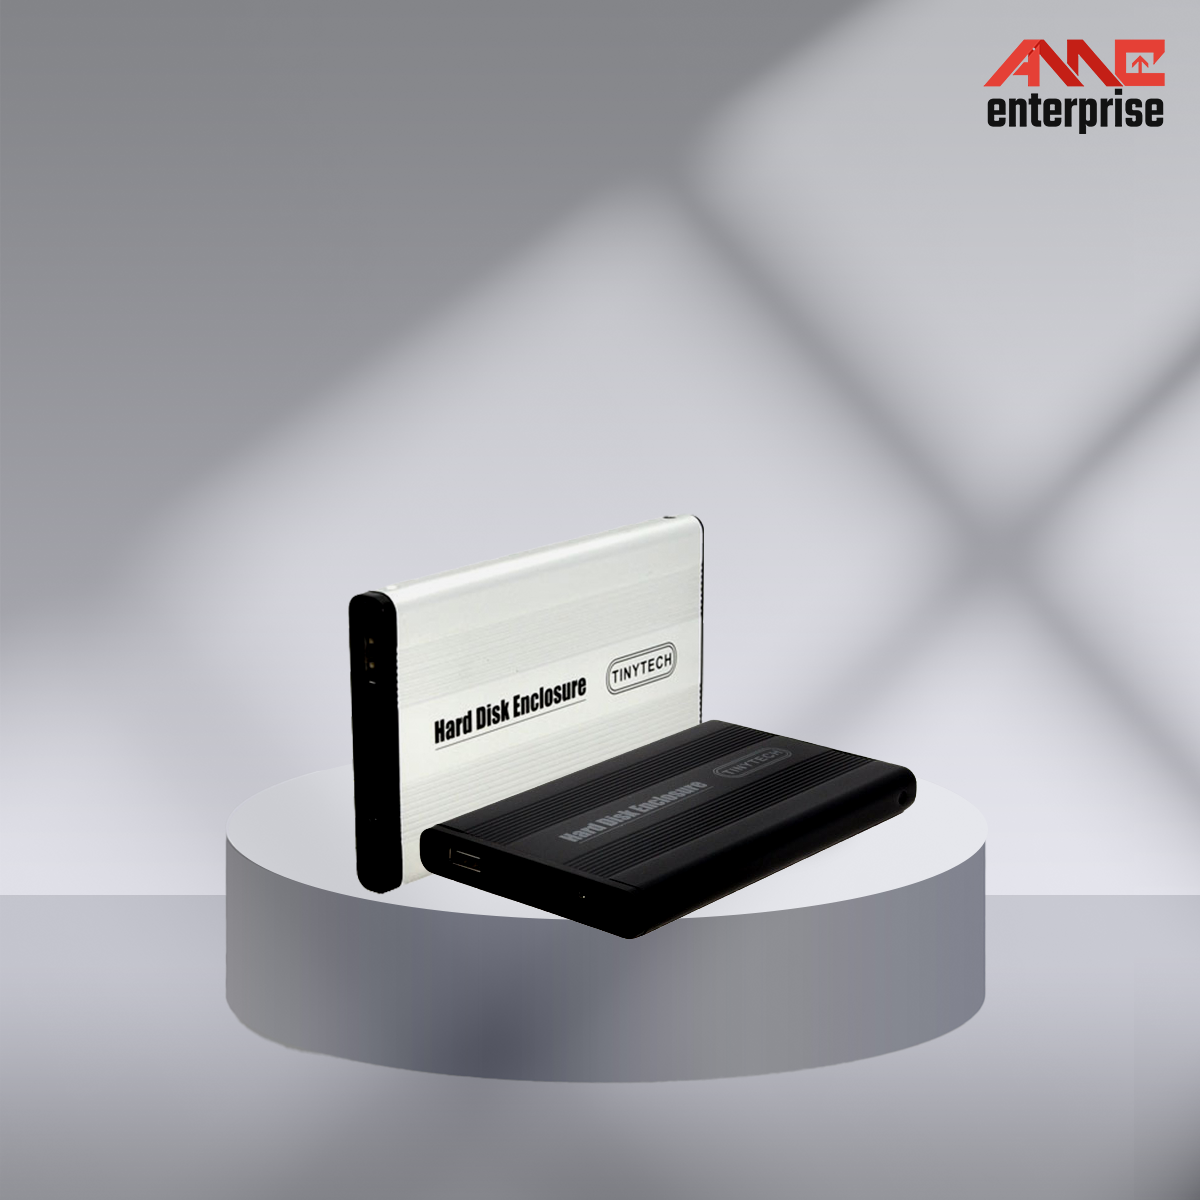 TINYTECH 2.5 HDD ENCLOSURE USB-TY2501 (1).png